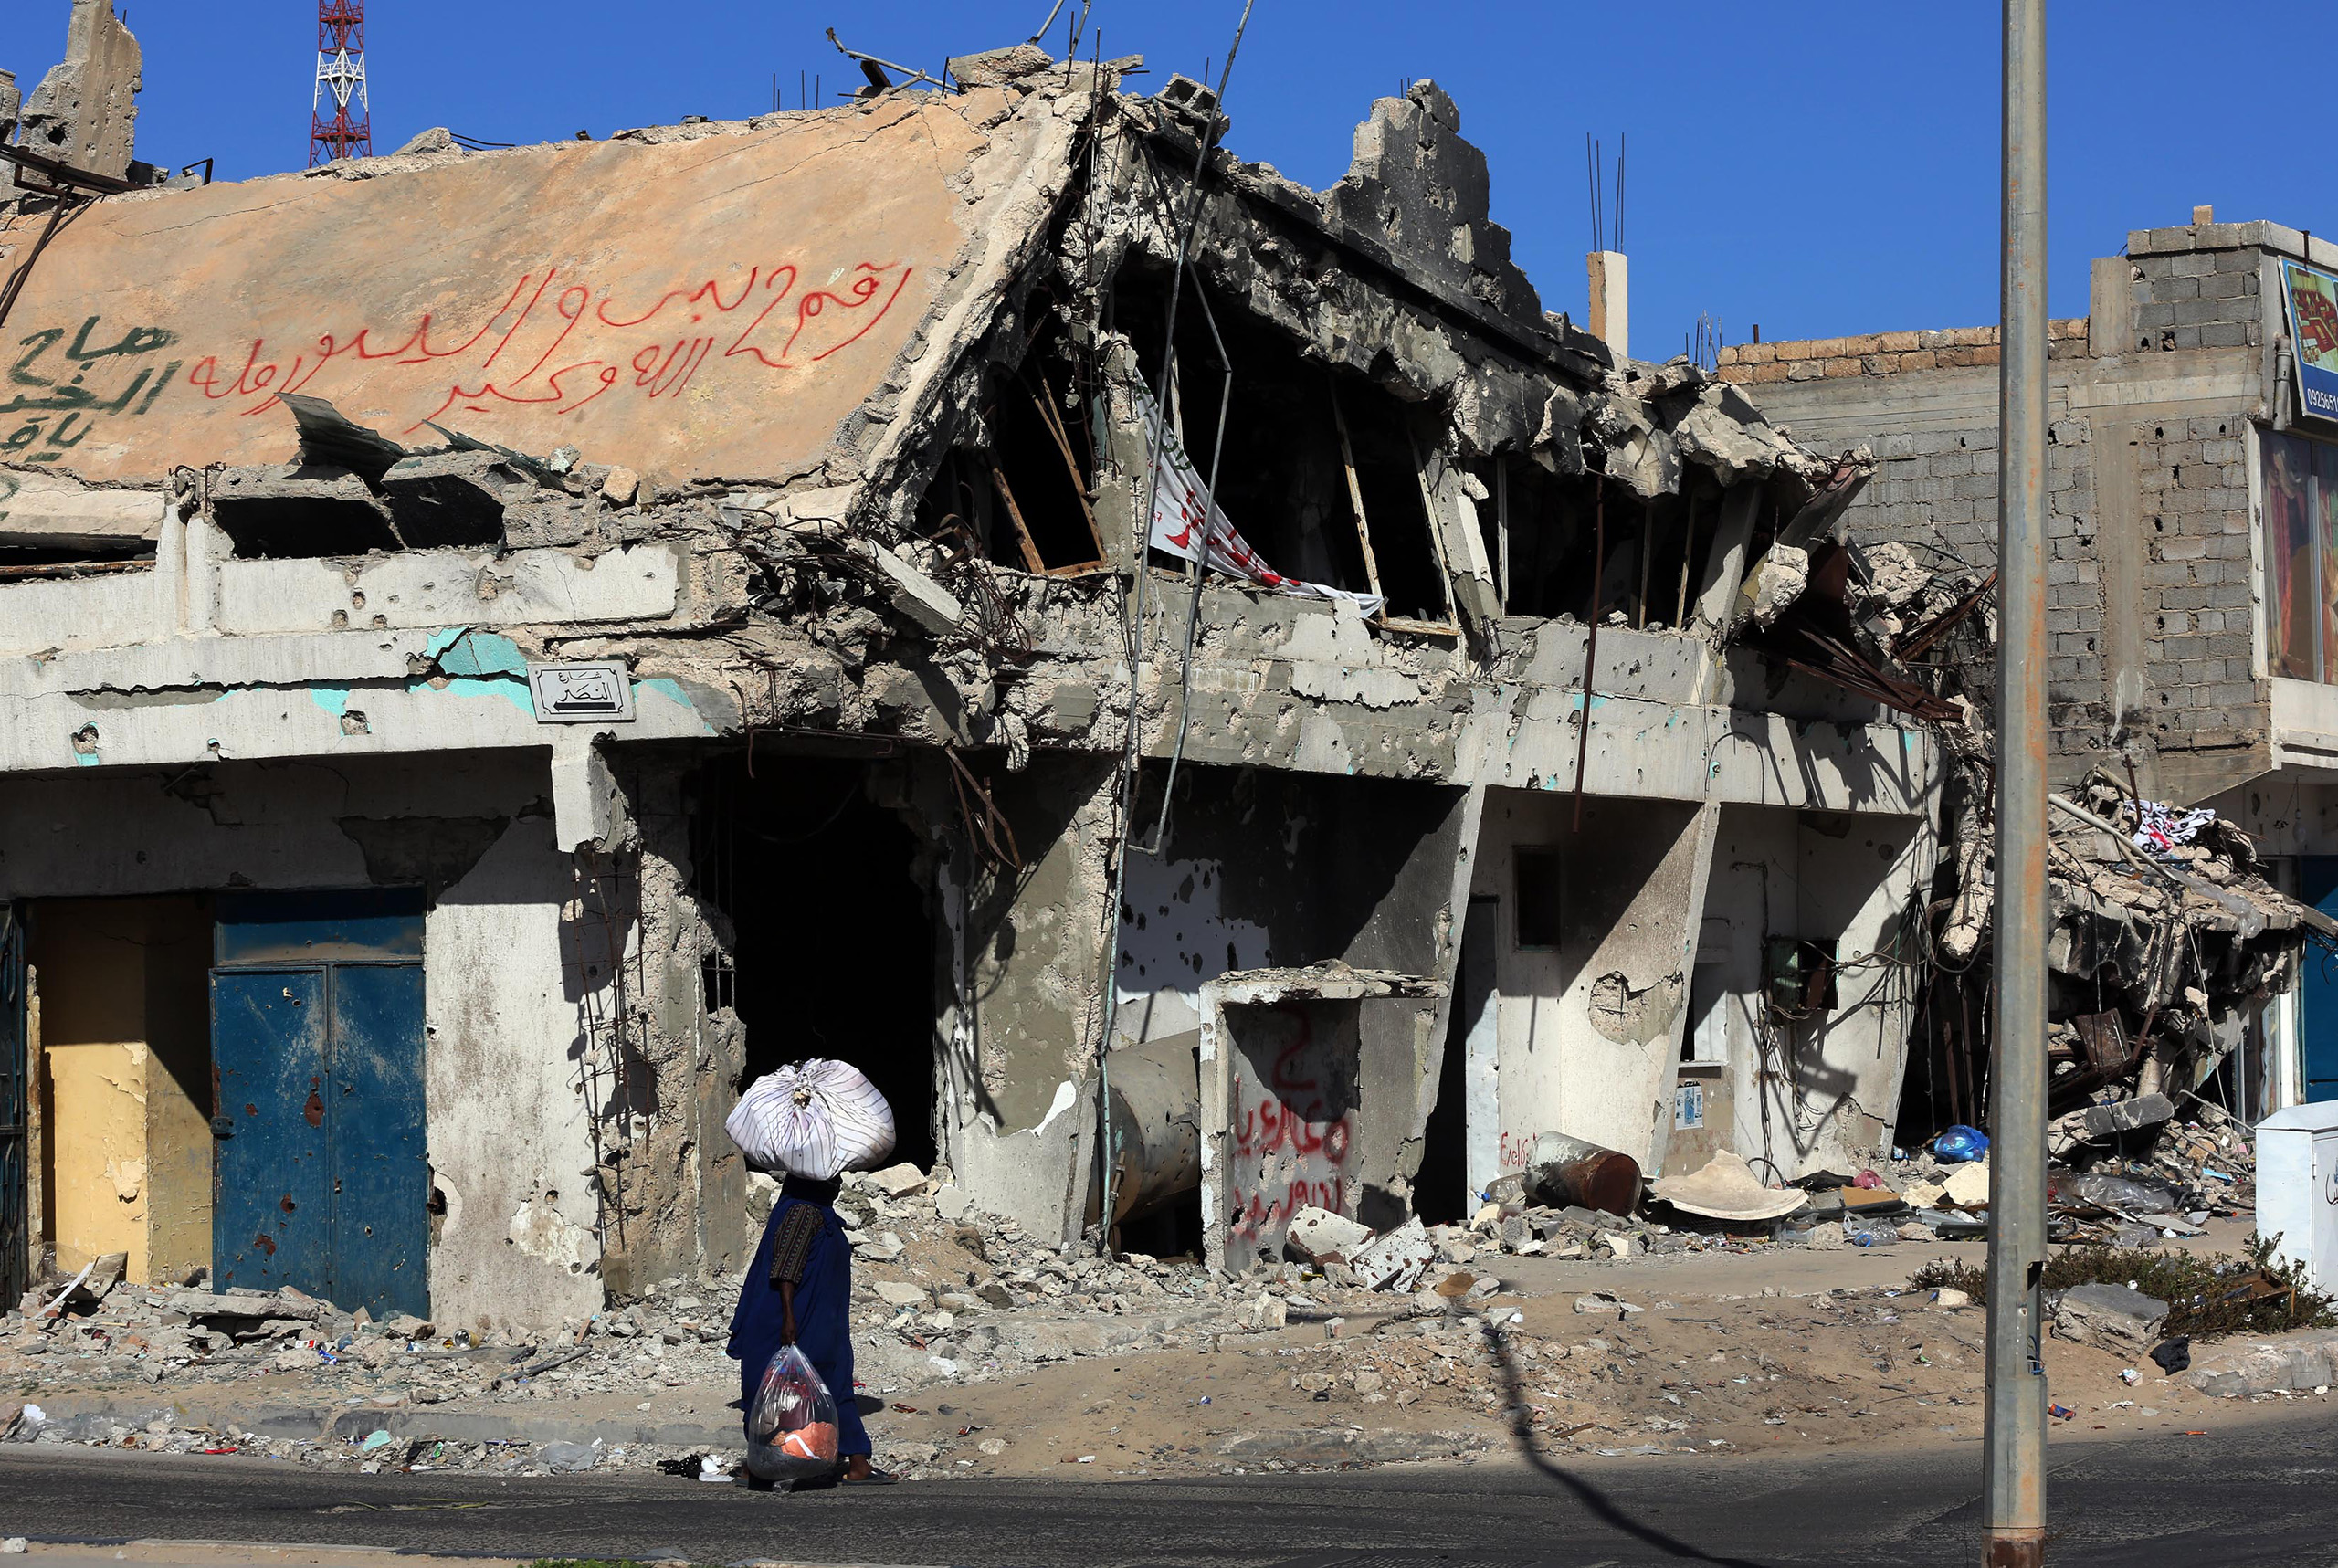 A Libyan woman walks past the rubble of a building in the Mediterranean city of Sirte, Oct. 13, 2012.